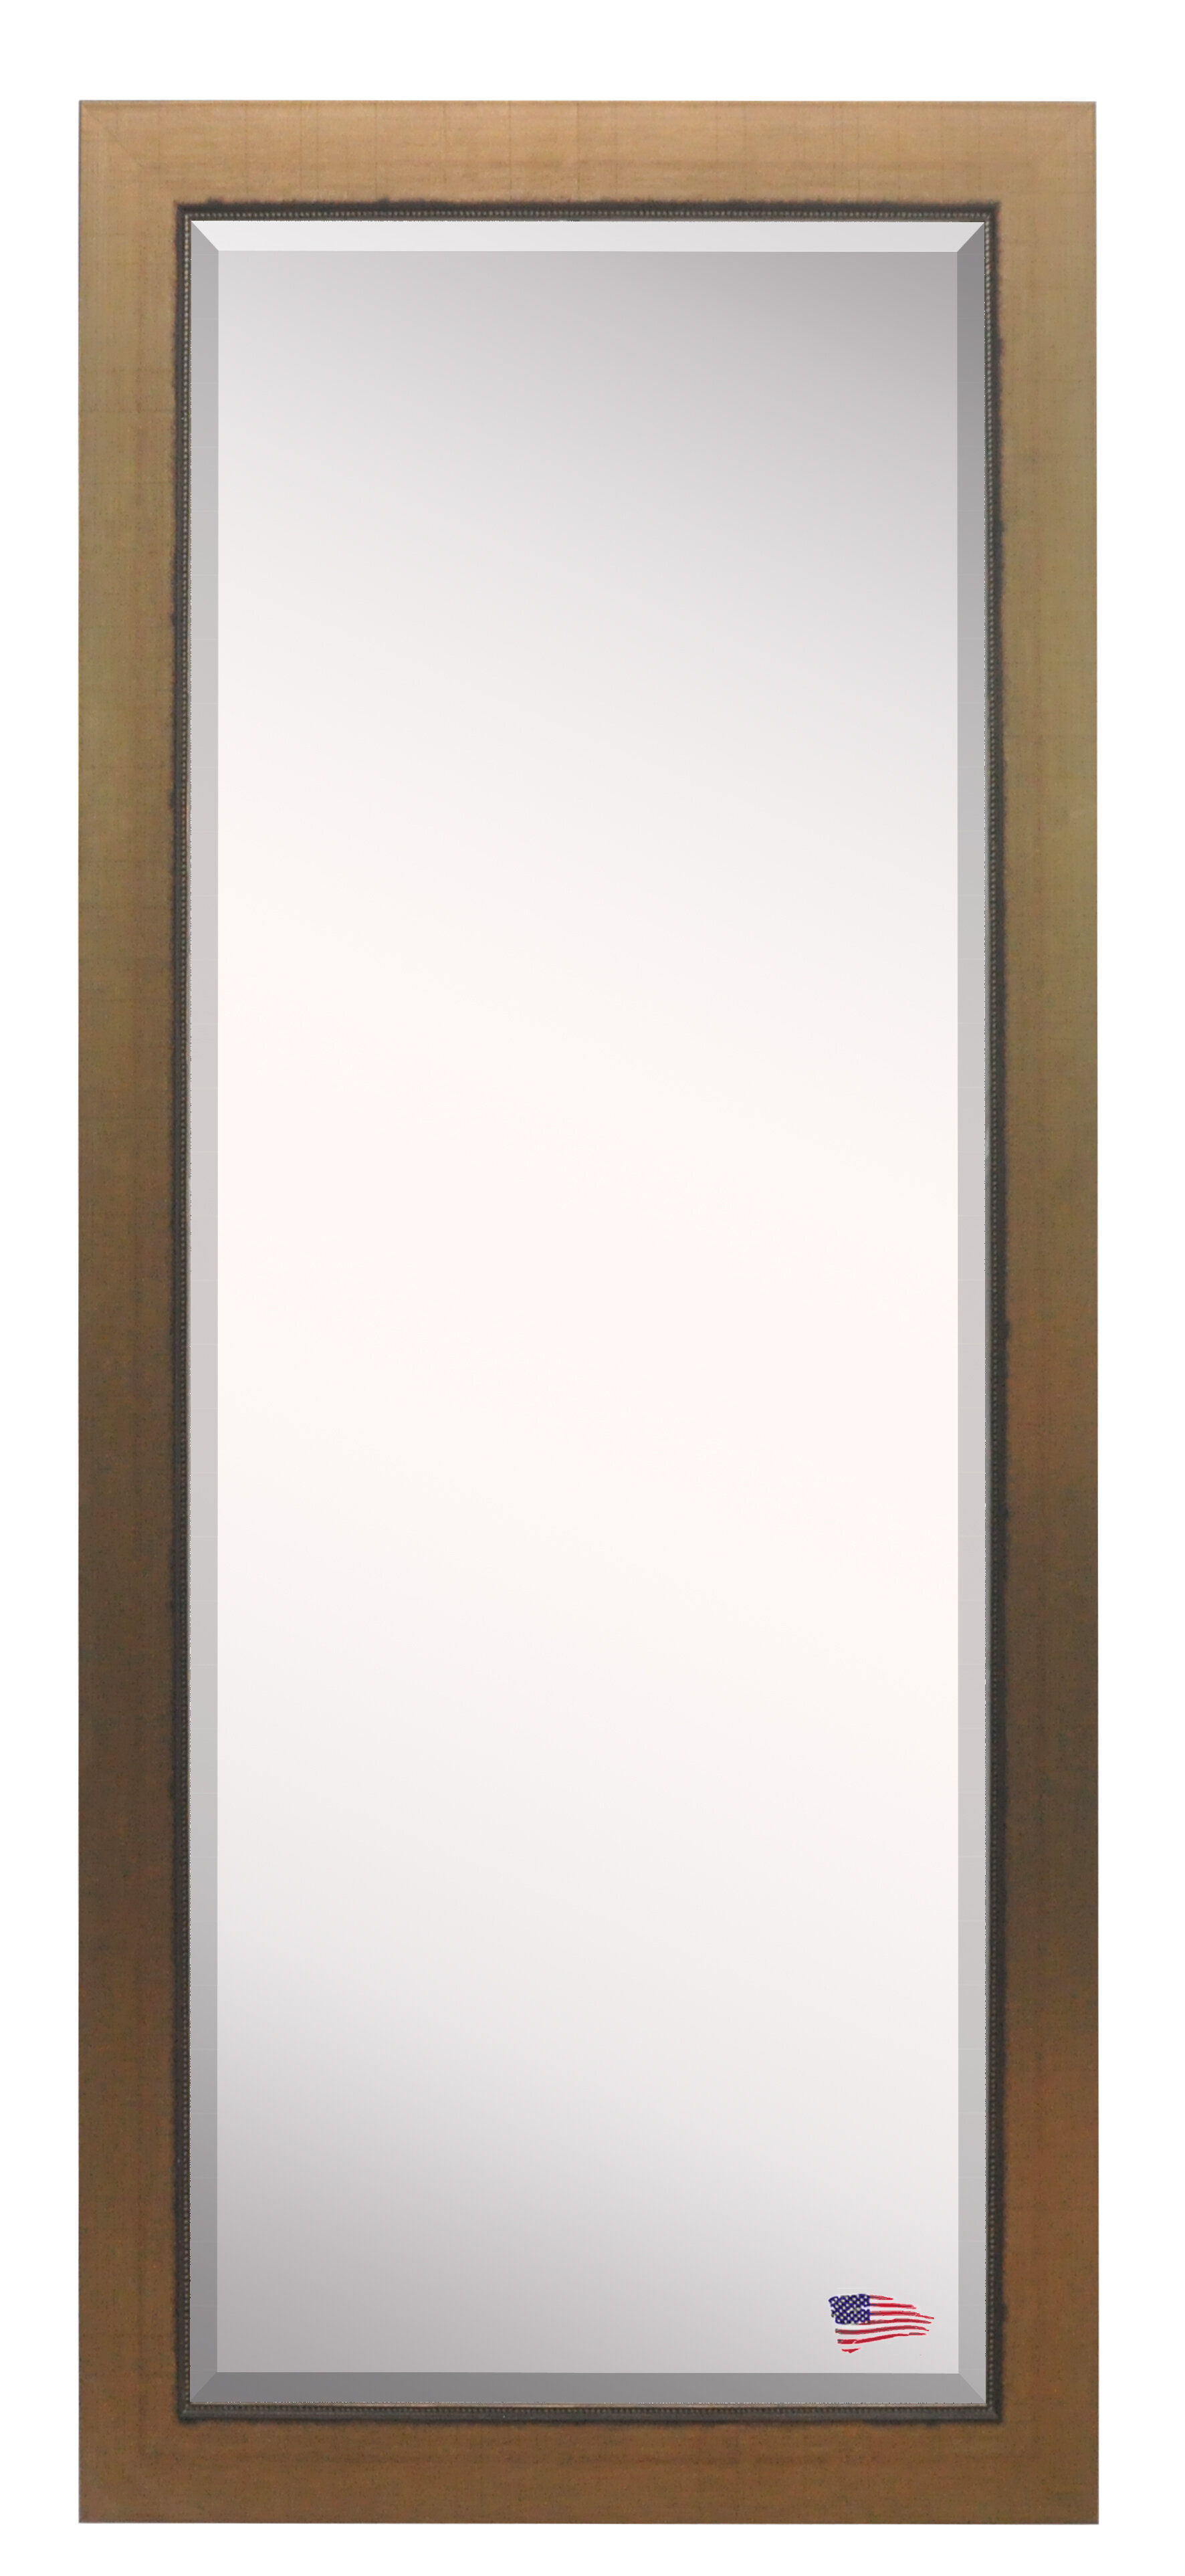 Gold Darby Home Co Wall Mirrors You Ll Love In 2021 Wayfair